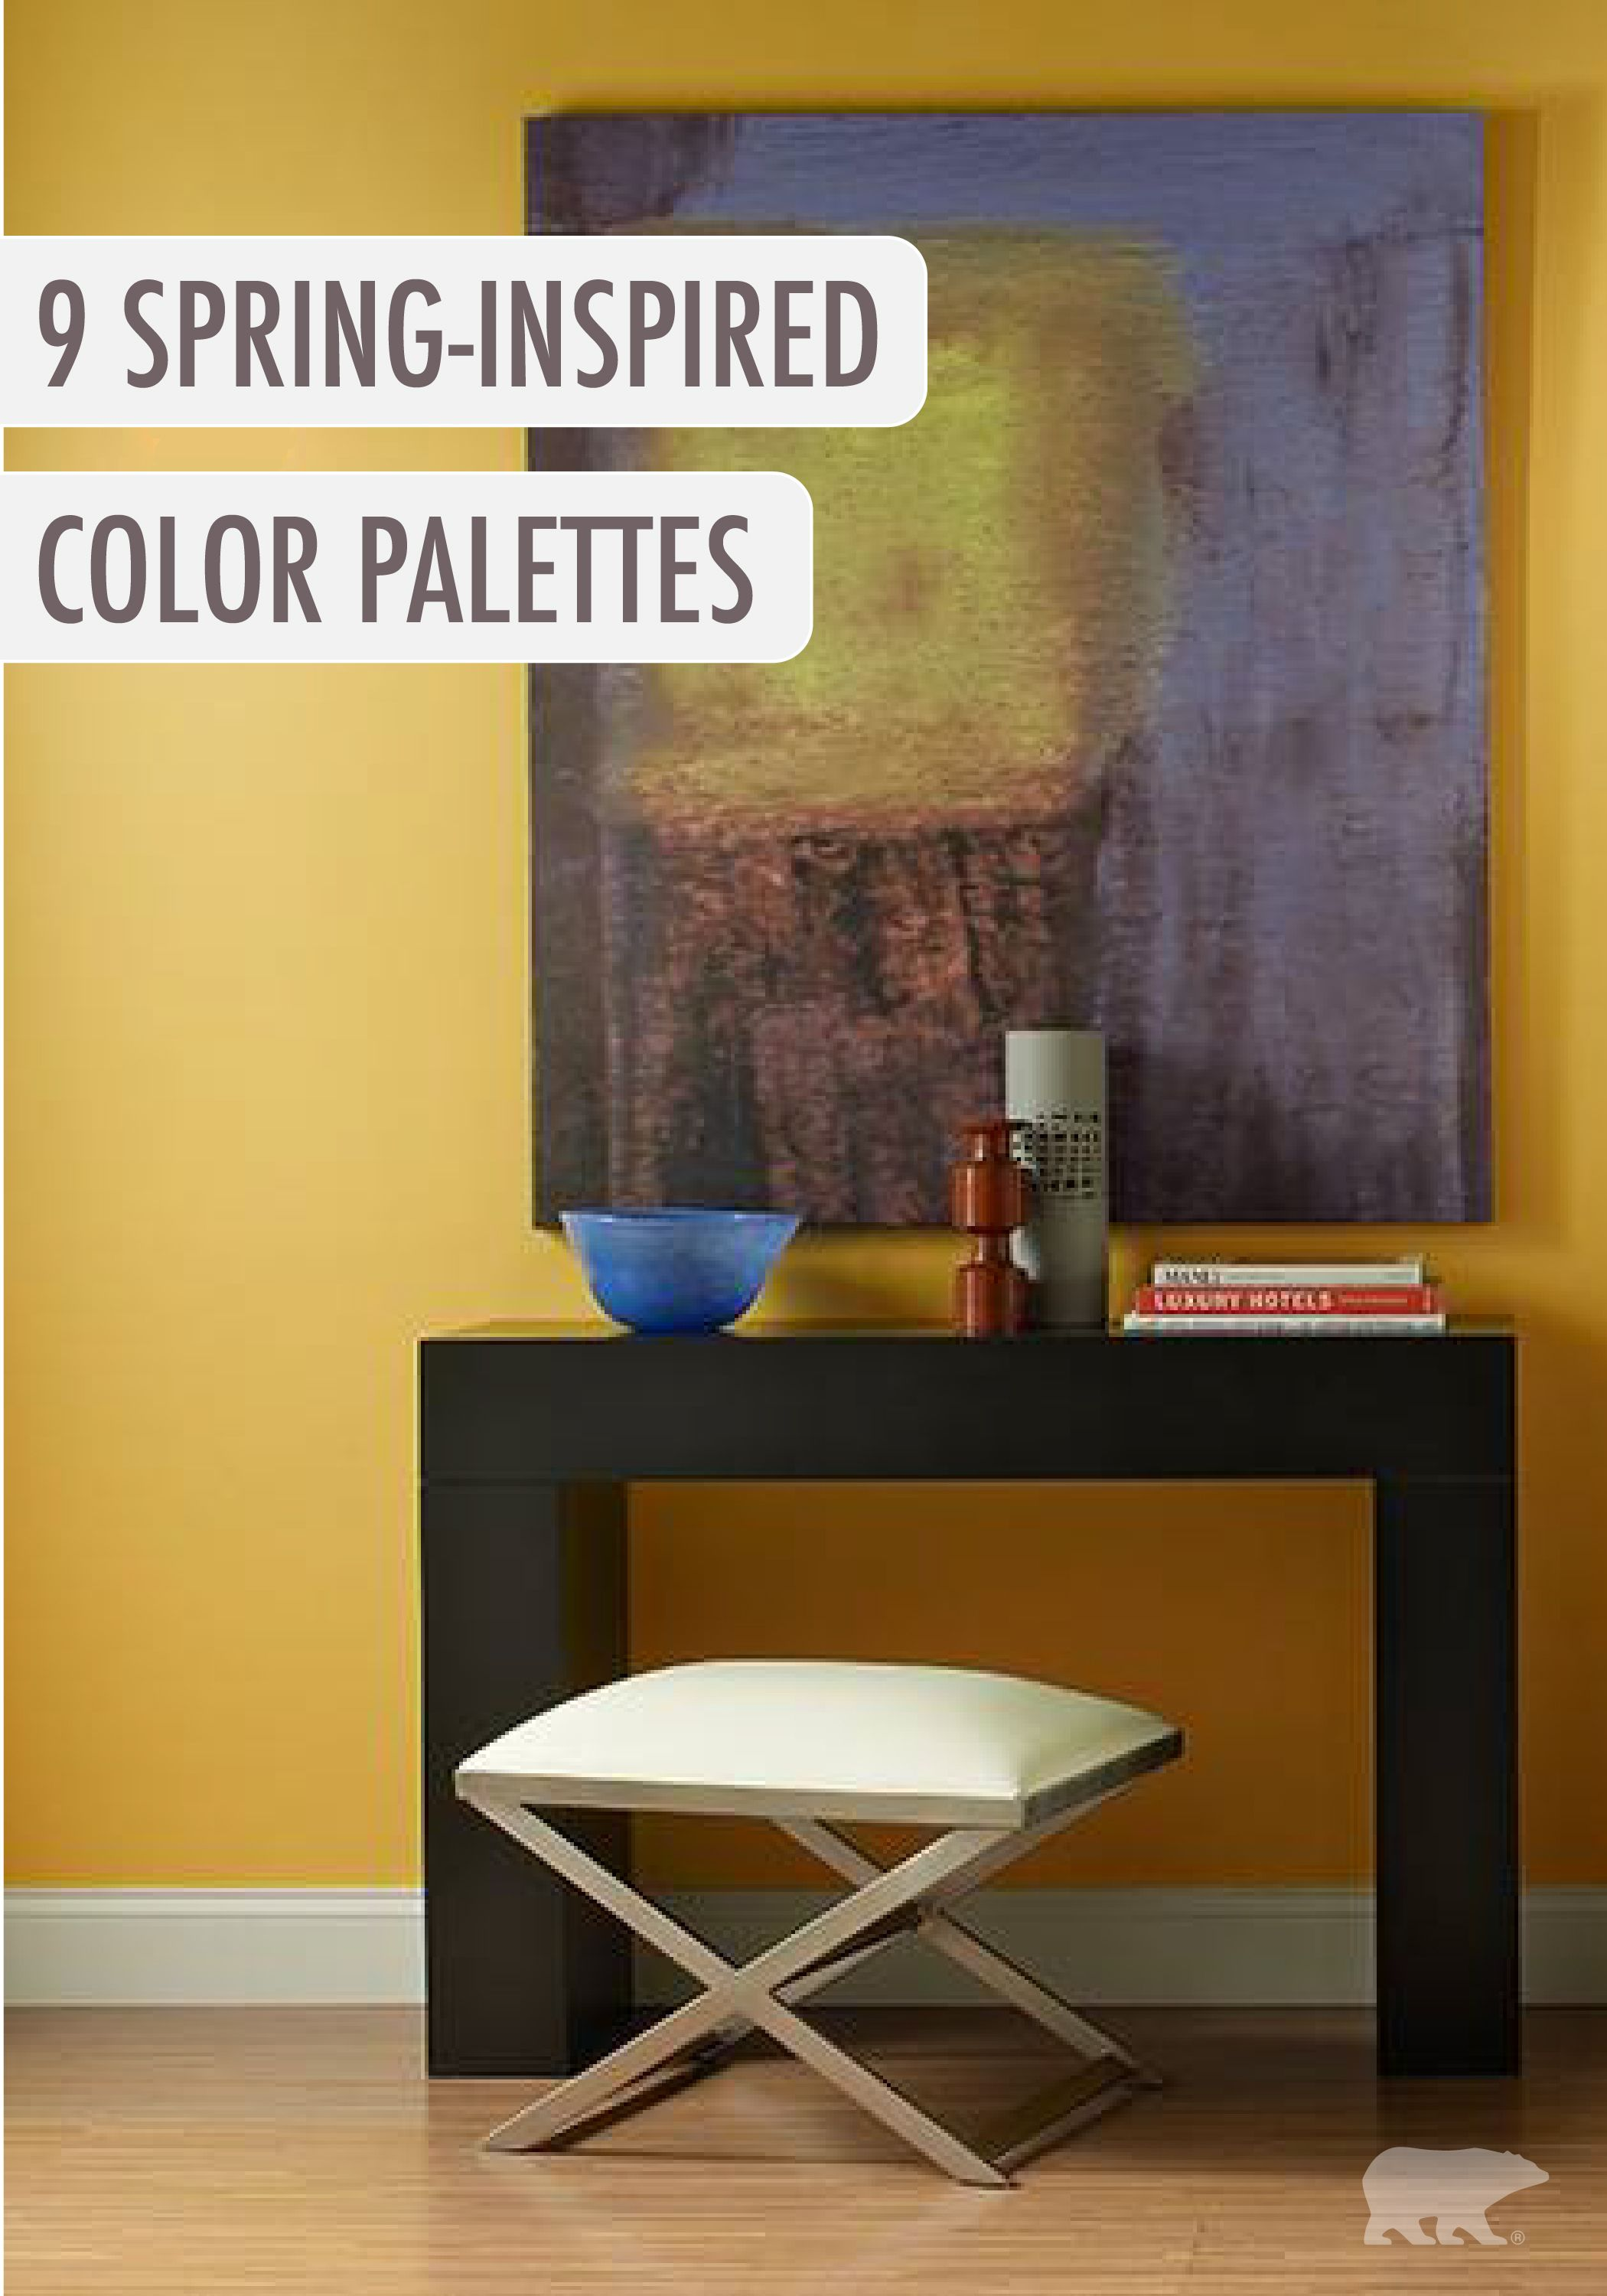 BEHR paint in Smiley Face yellow makes the perfect backdrop to your